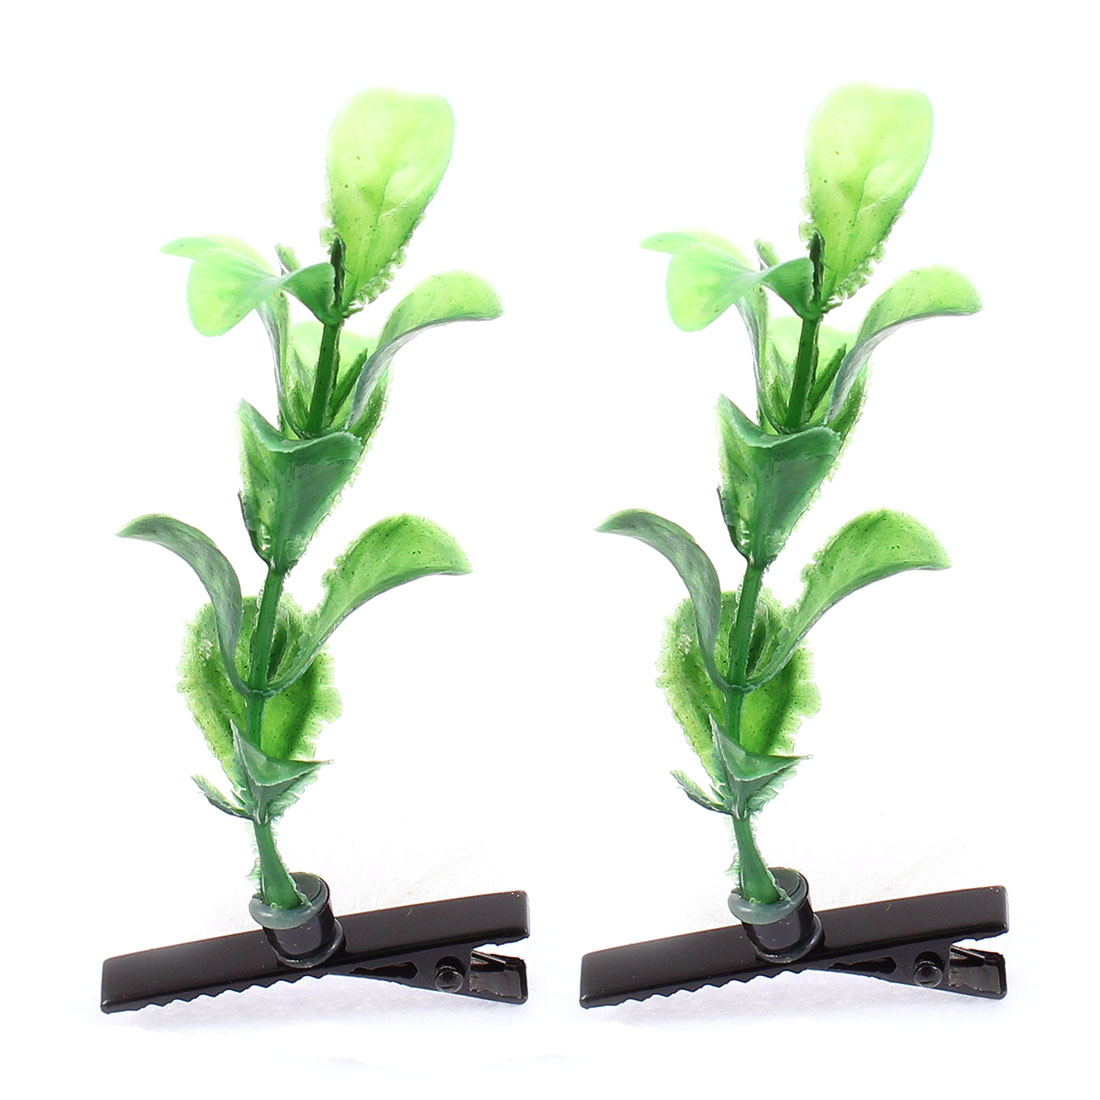 Lady Woman Plastic Plant Decor Party Alligator Hair Clip Barrette Green Pair